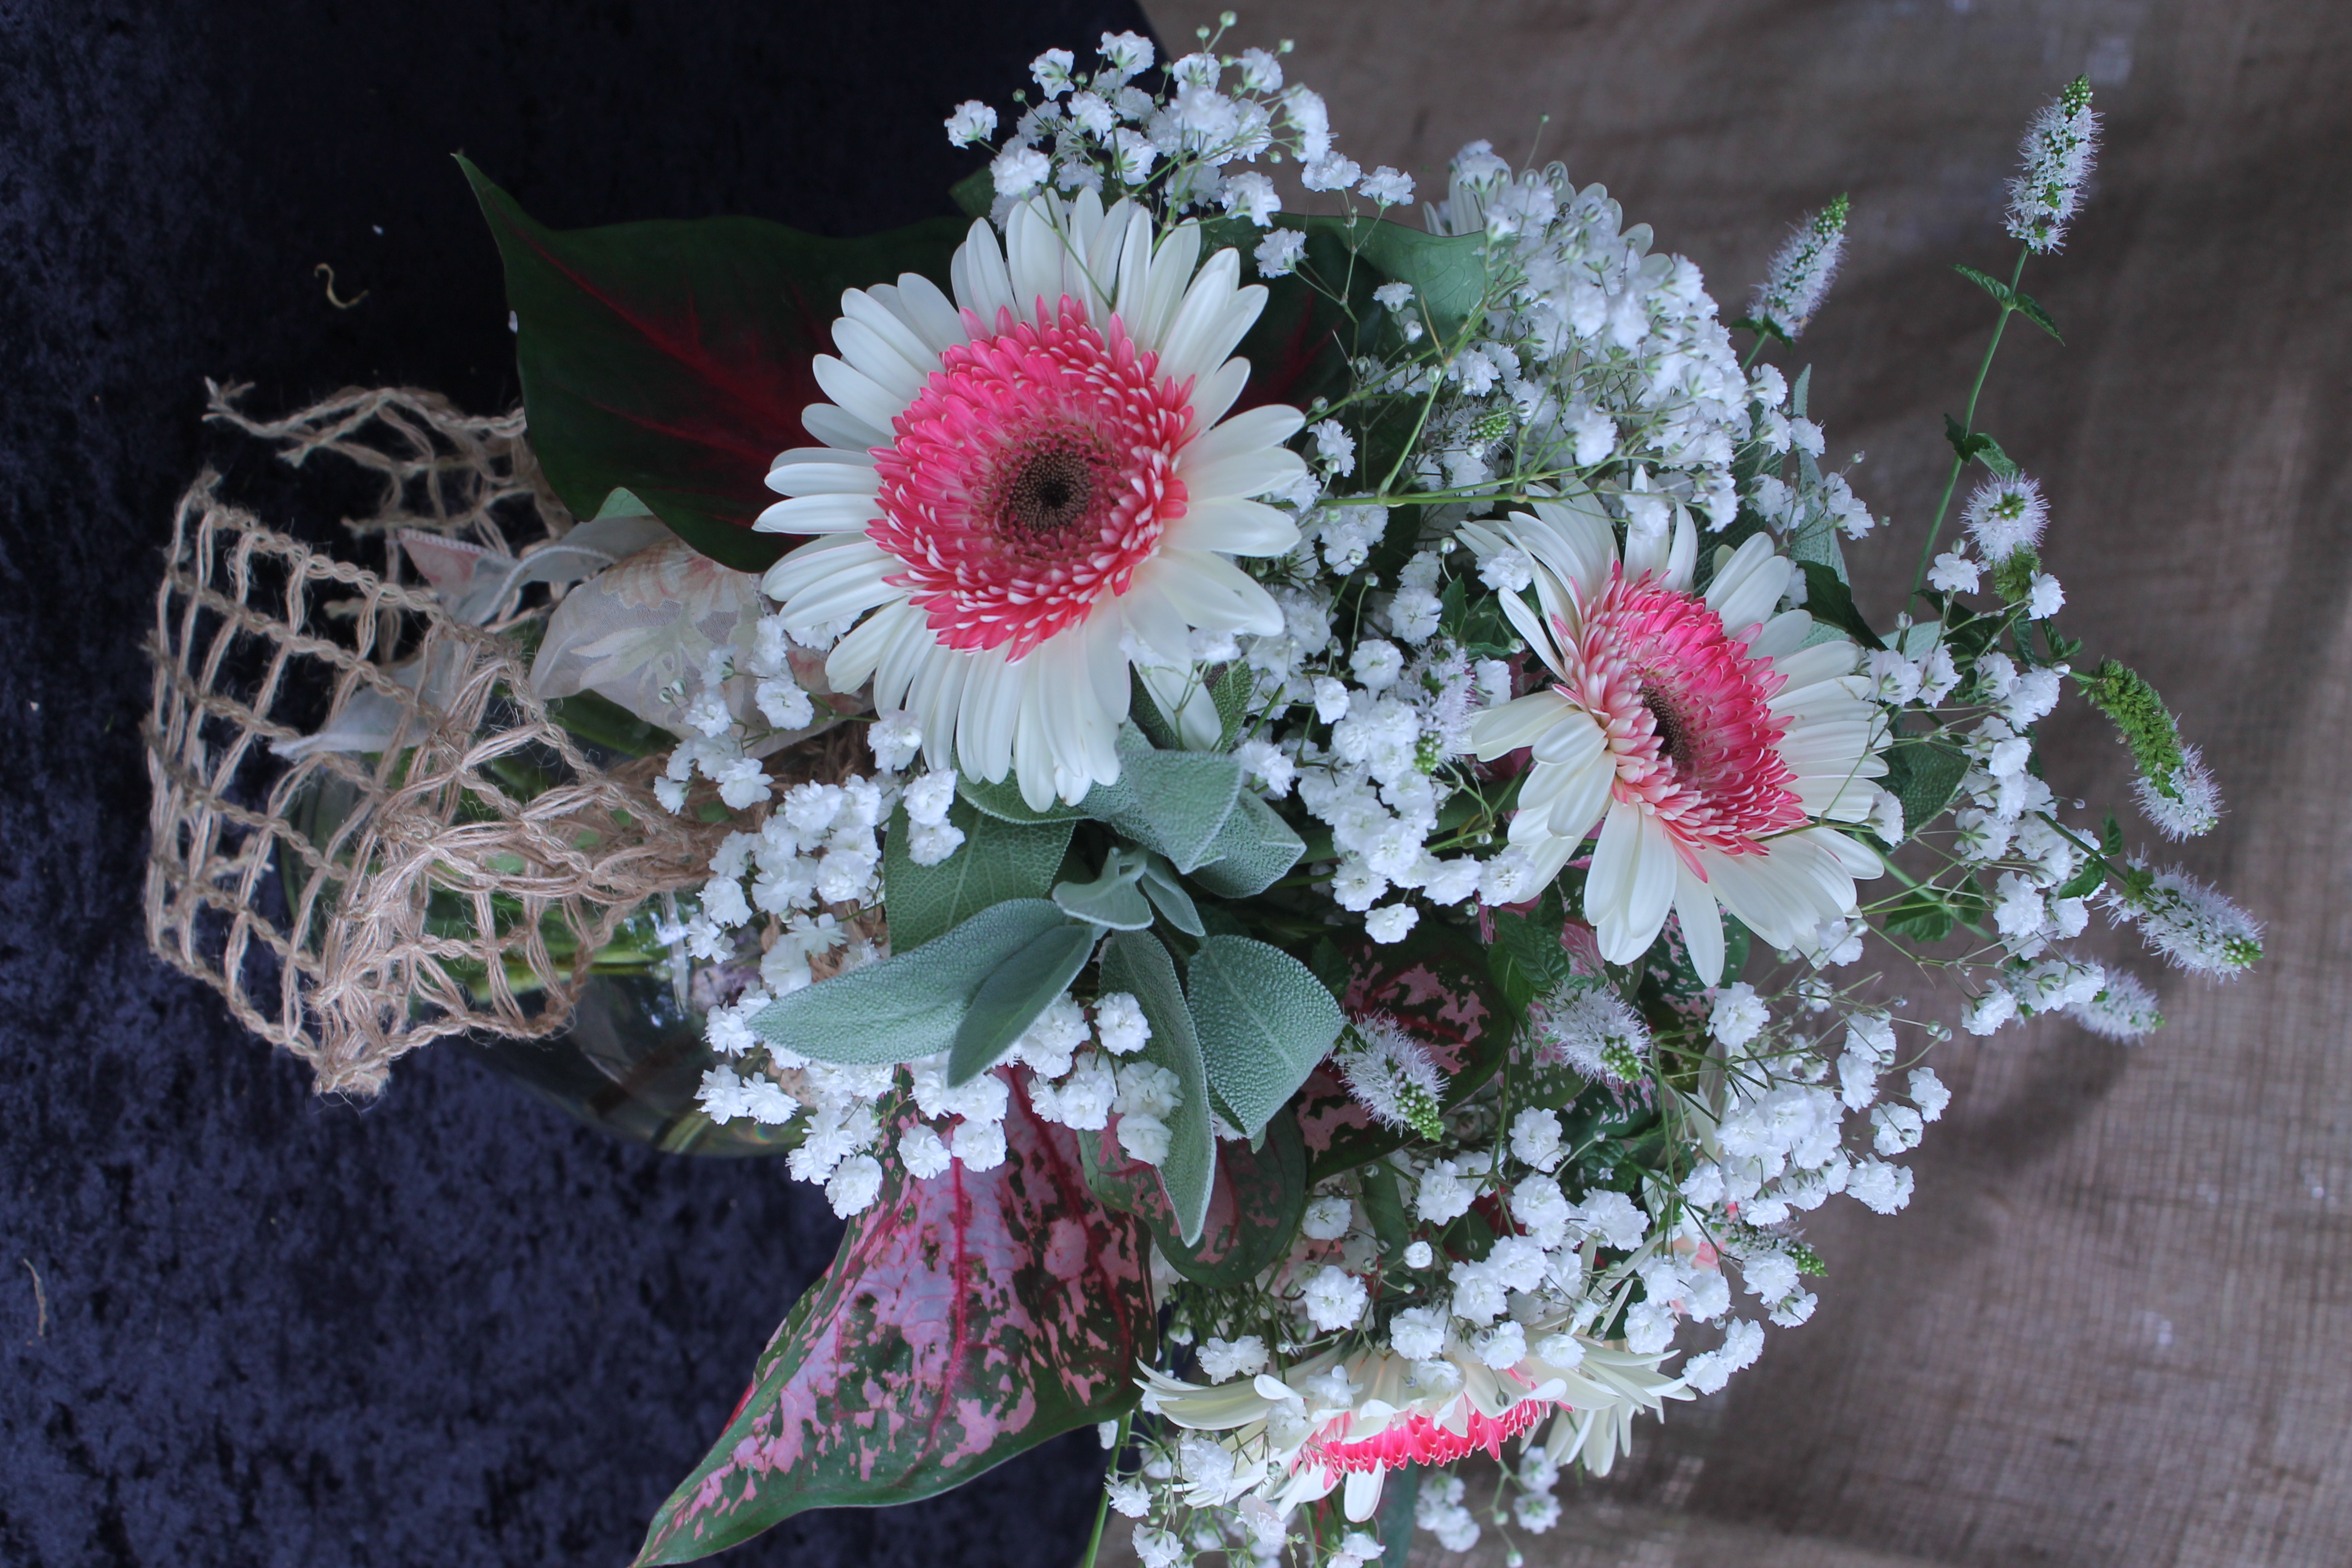 pink and white gerbera daisy